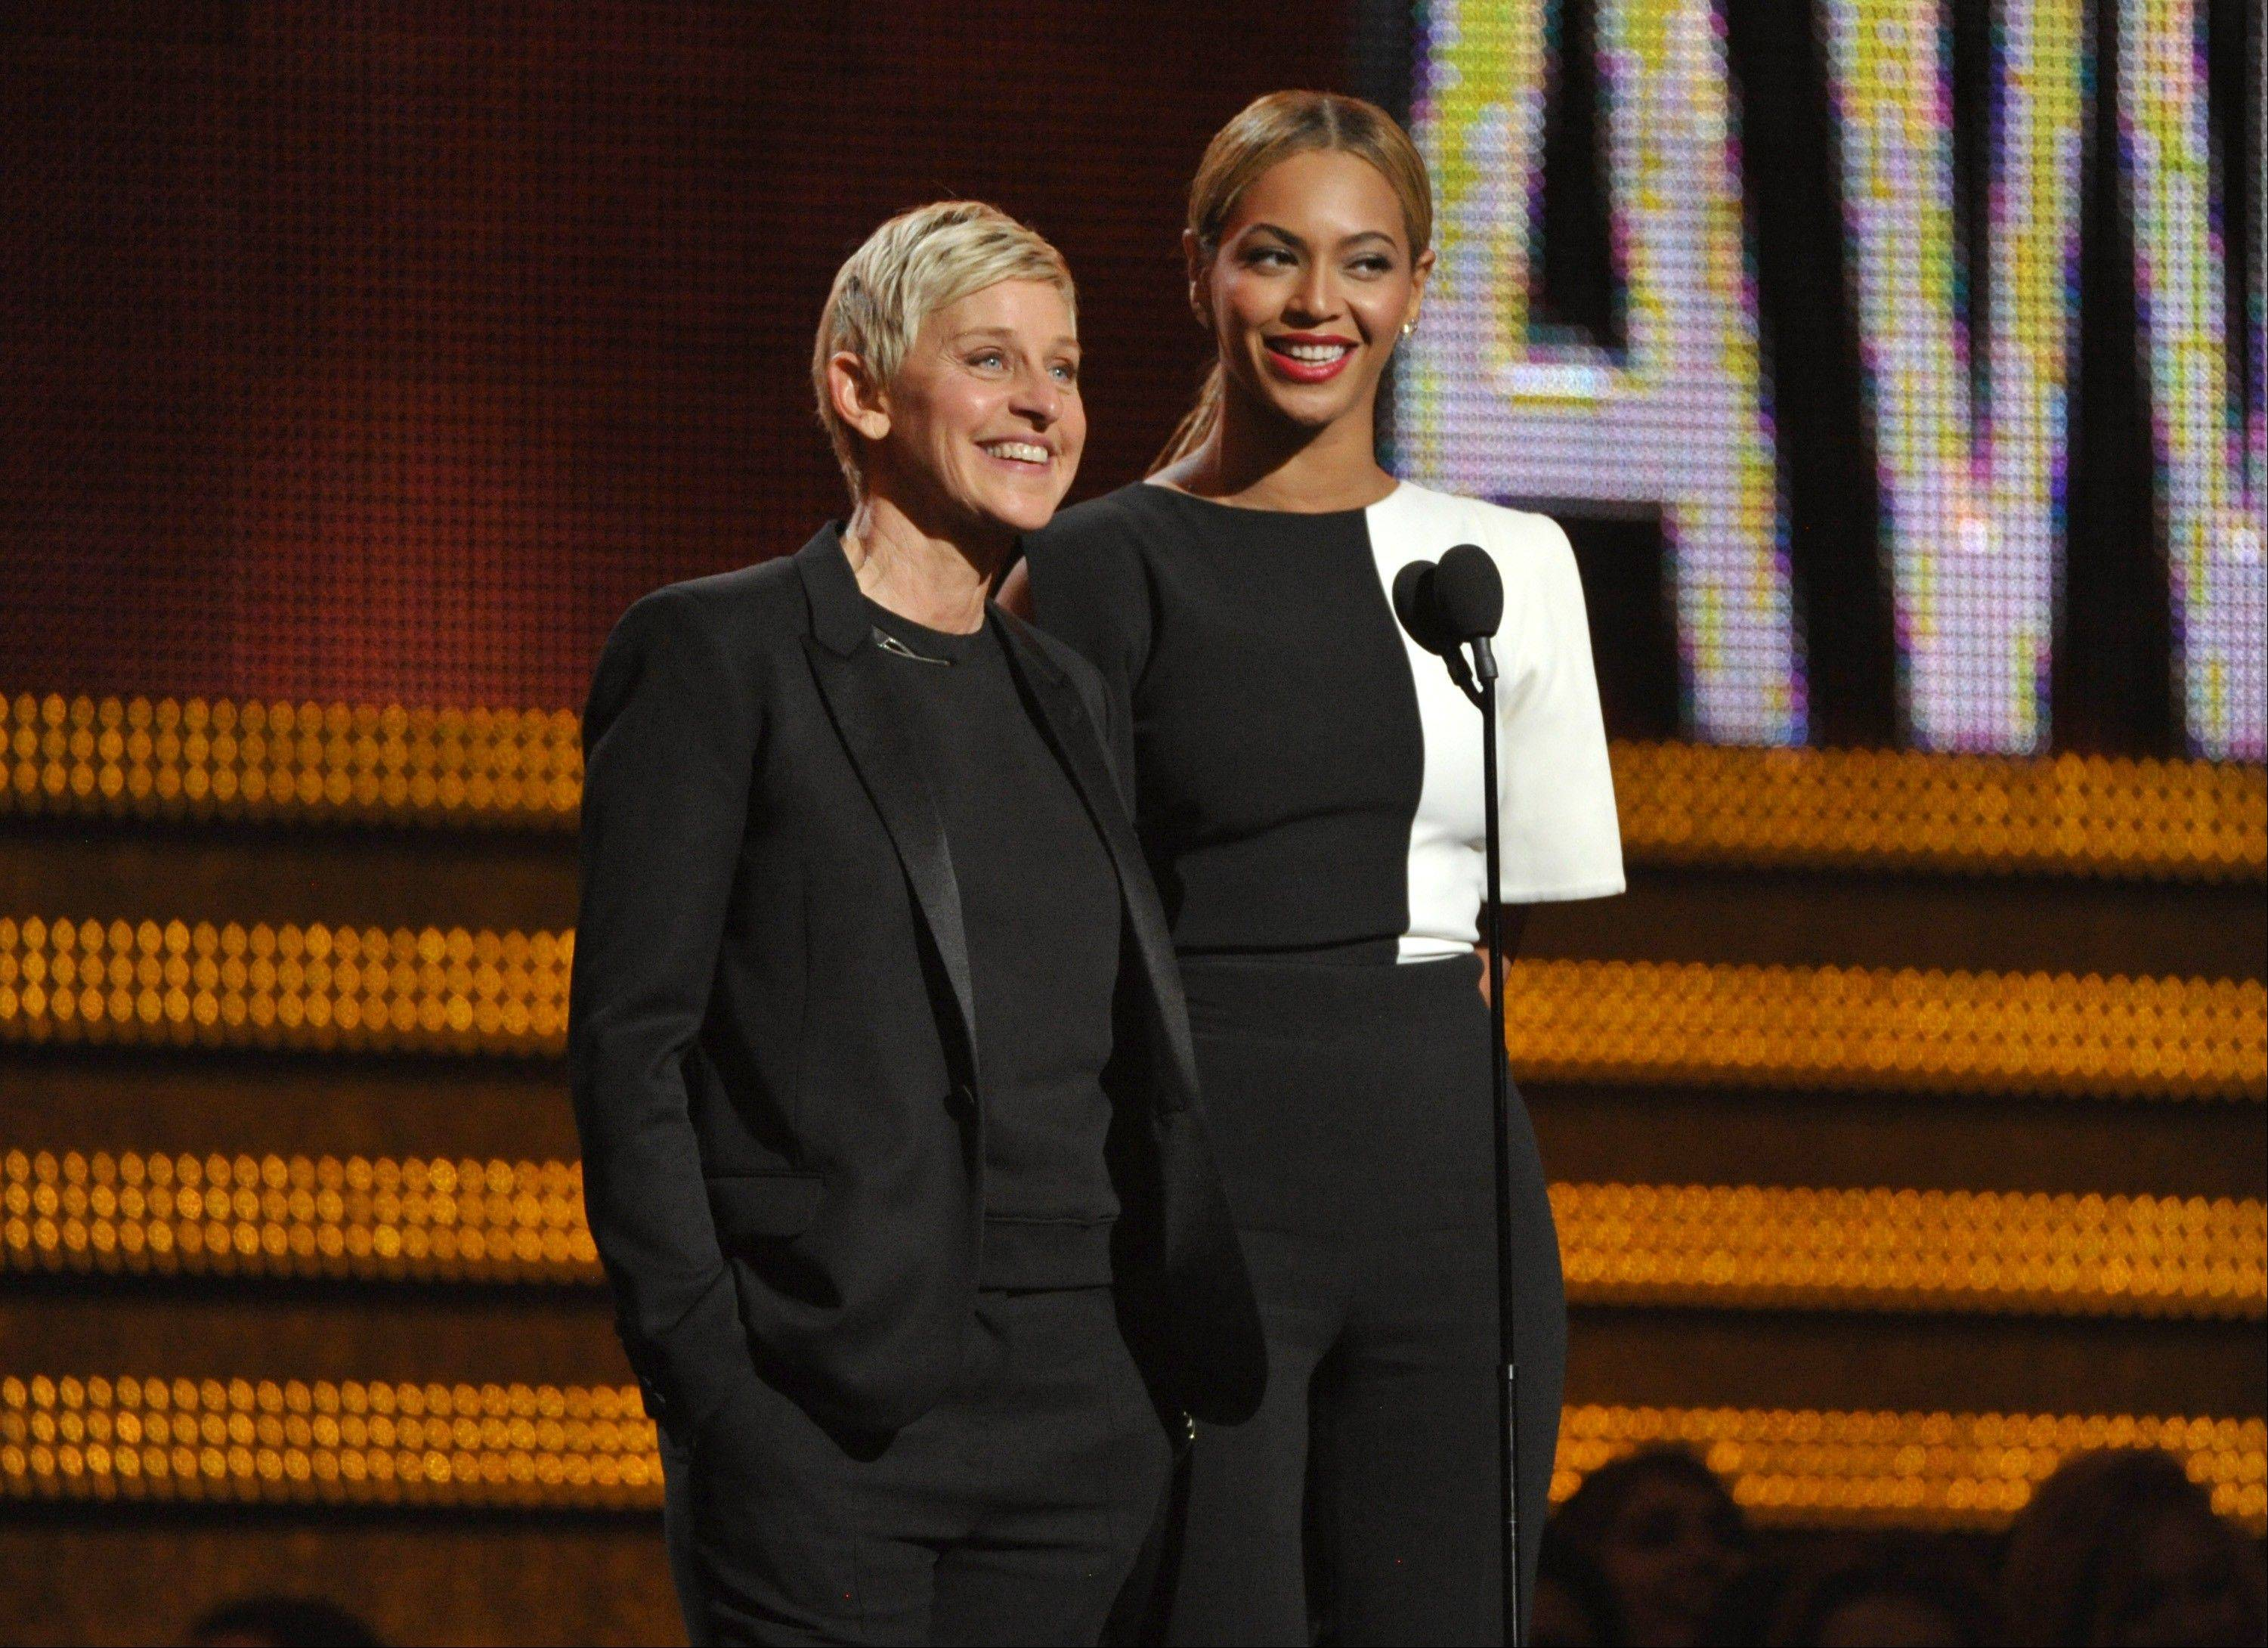 Ellen DeGeneres, left, and Beyonce speak on stage at the 55th annual Grammy Awards on Sunday, Feb. 10, 2013, in Los Angeles.